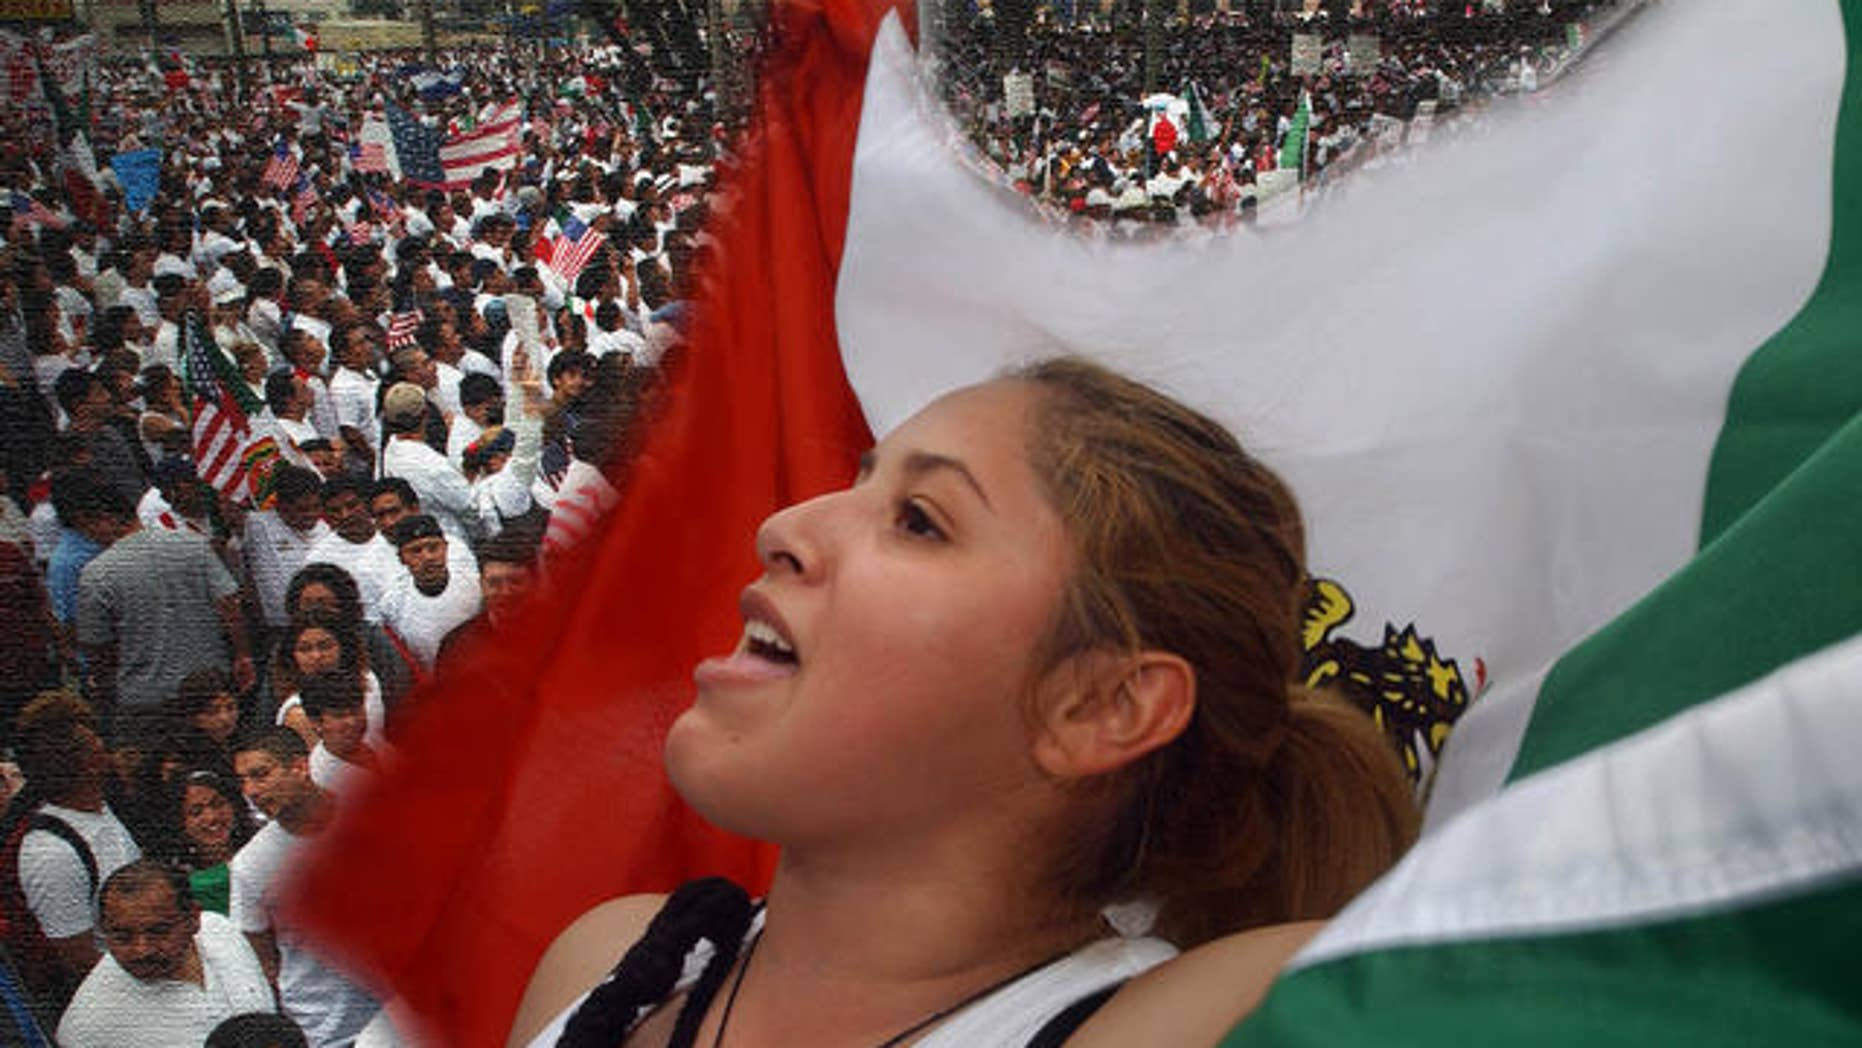 Anabel Chavarria, 17, waves a Mexican flag as she joins demonstrators gathered to protest federal immigration legislation in front of City Hall in Los Angeles, Saturday March 25, 2006. The U.S. House of Represenatives passed a bill that would make it a felony to be in the U.S. illegally, impose new penalties on employers who hire illegal immigrants and erect fences along one-third of the U.S.-Mexican border. The Senate is to begin debating the proposals on Tuesday. (AP Photo/Ann Johansson)